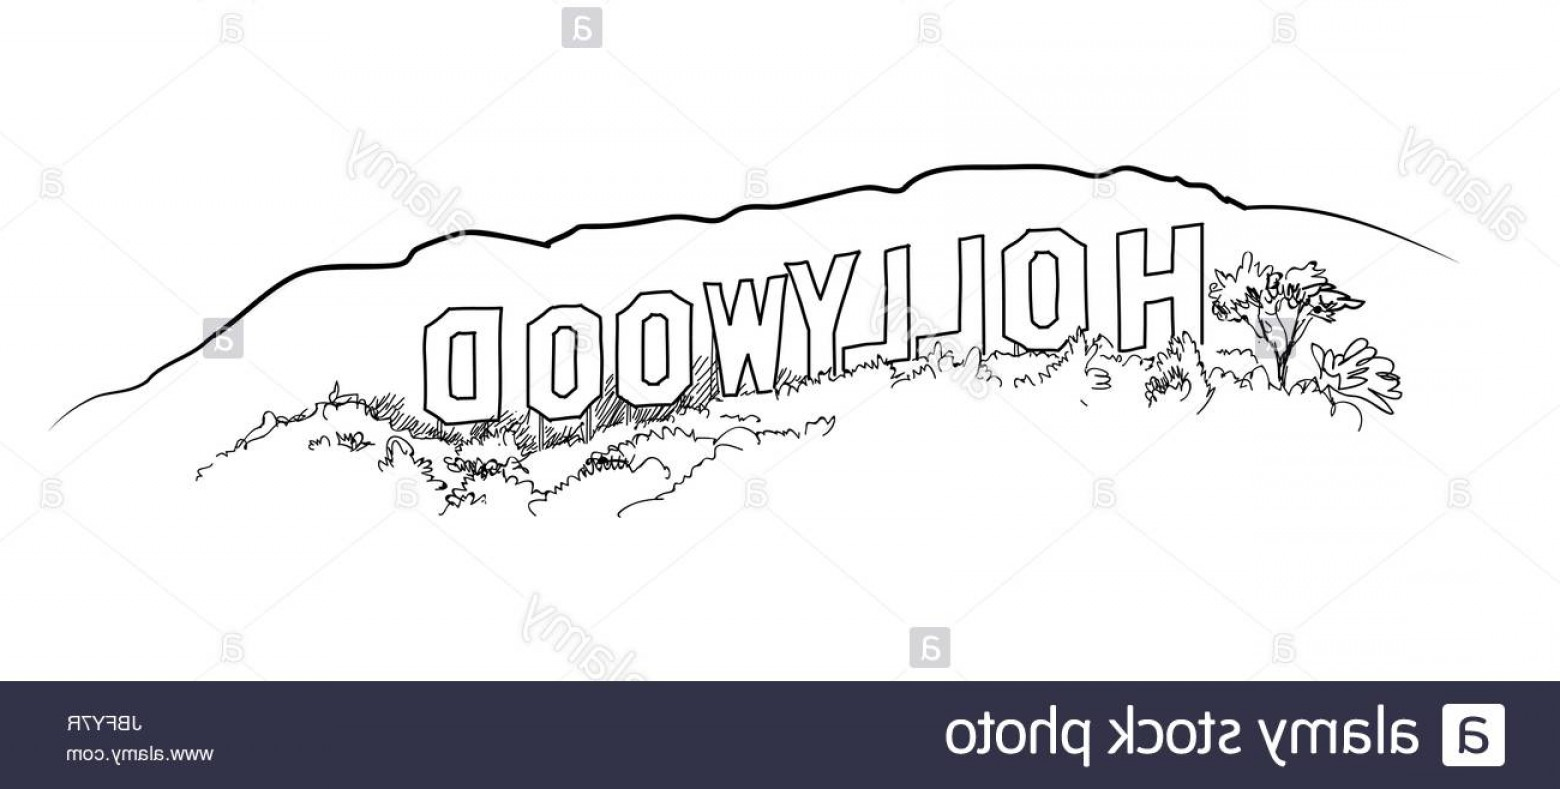 Hollywood Hills Vector: Stock Photo Hollywood Sign Engraving Hollywood Hill Landscape View